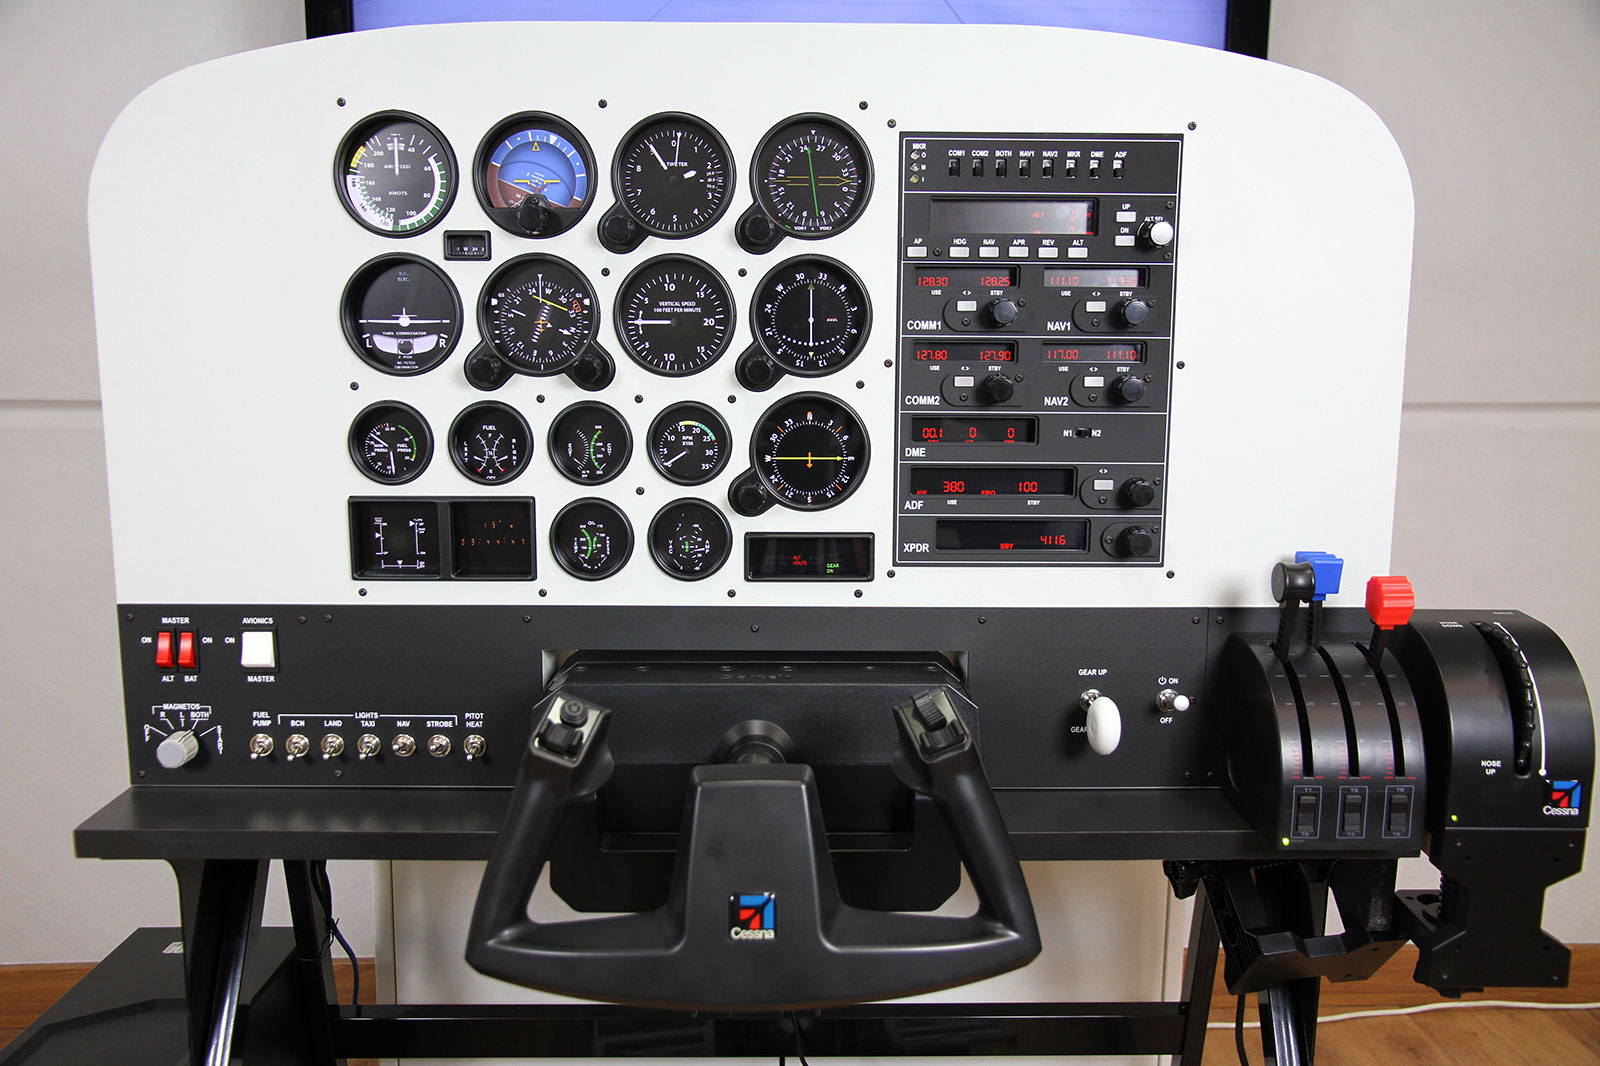 Virtual-Fly's Solo Flight Panel with some GA Panel Gauges and full GA Radio Stack